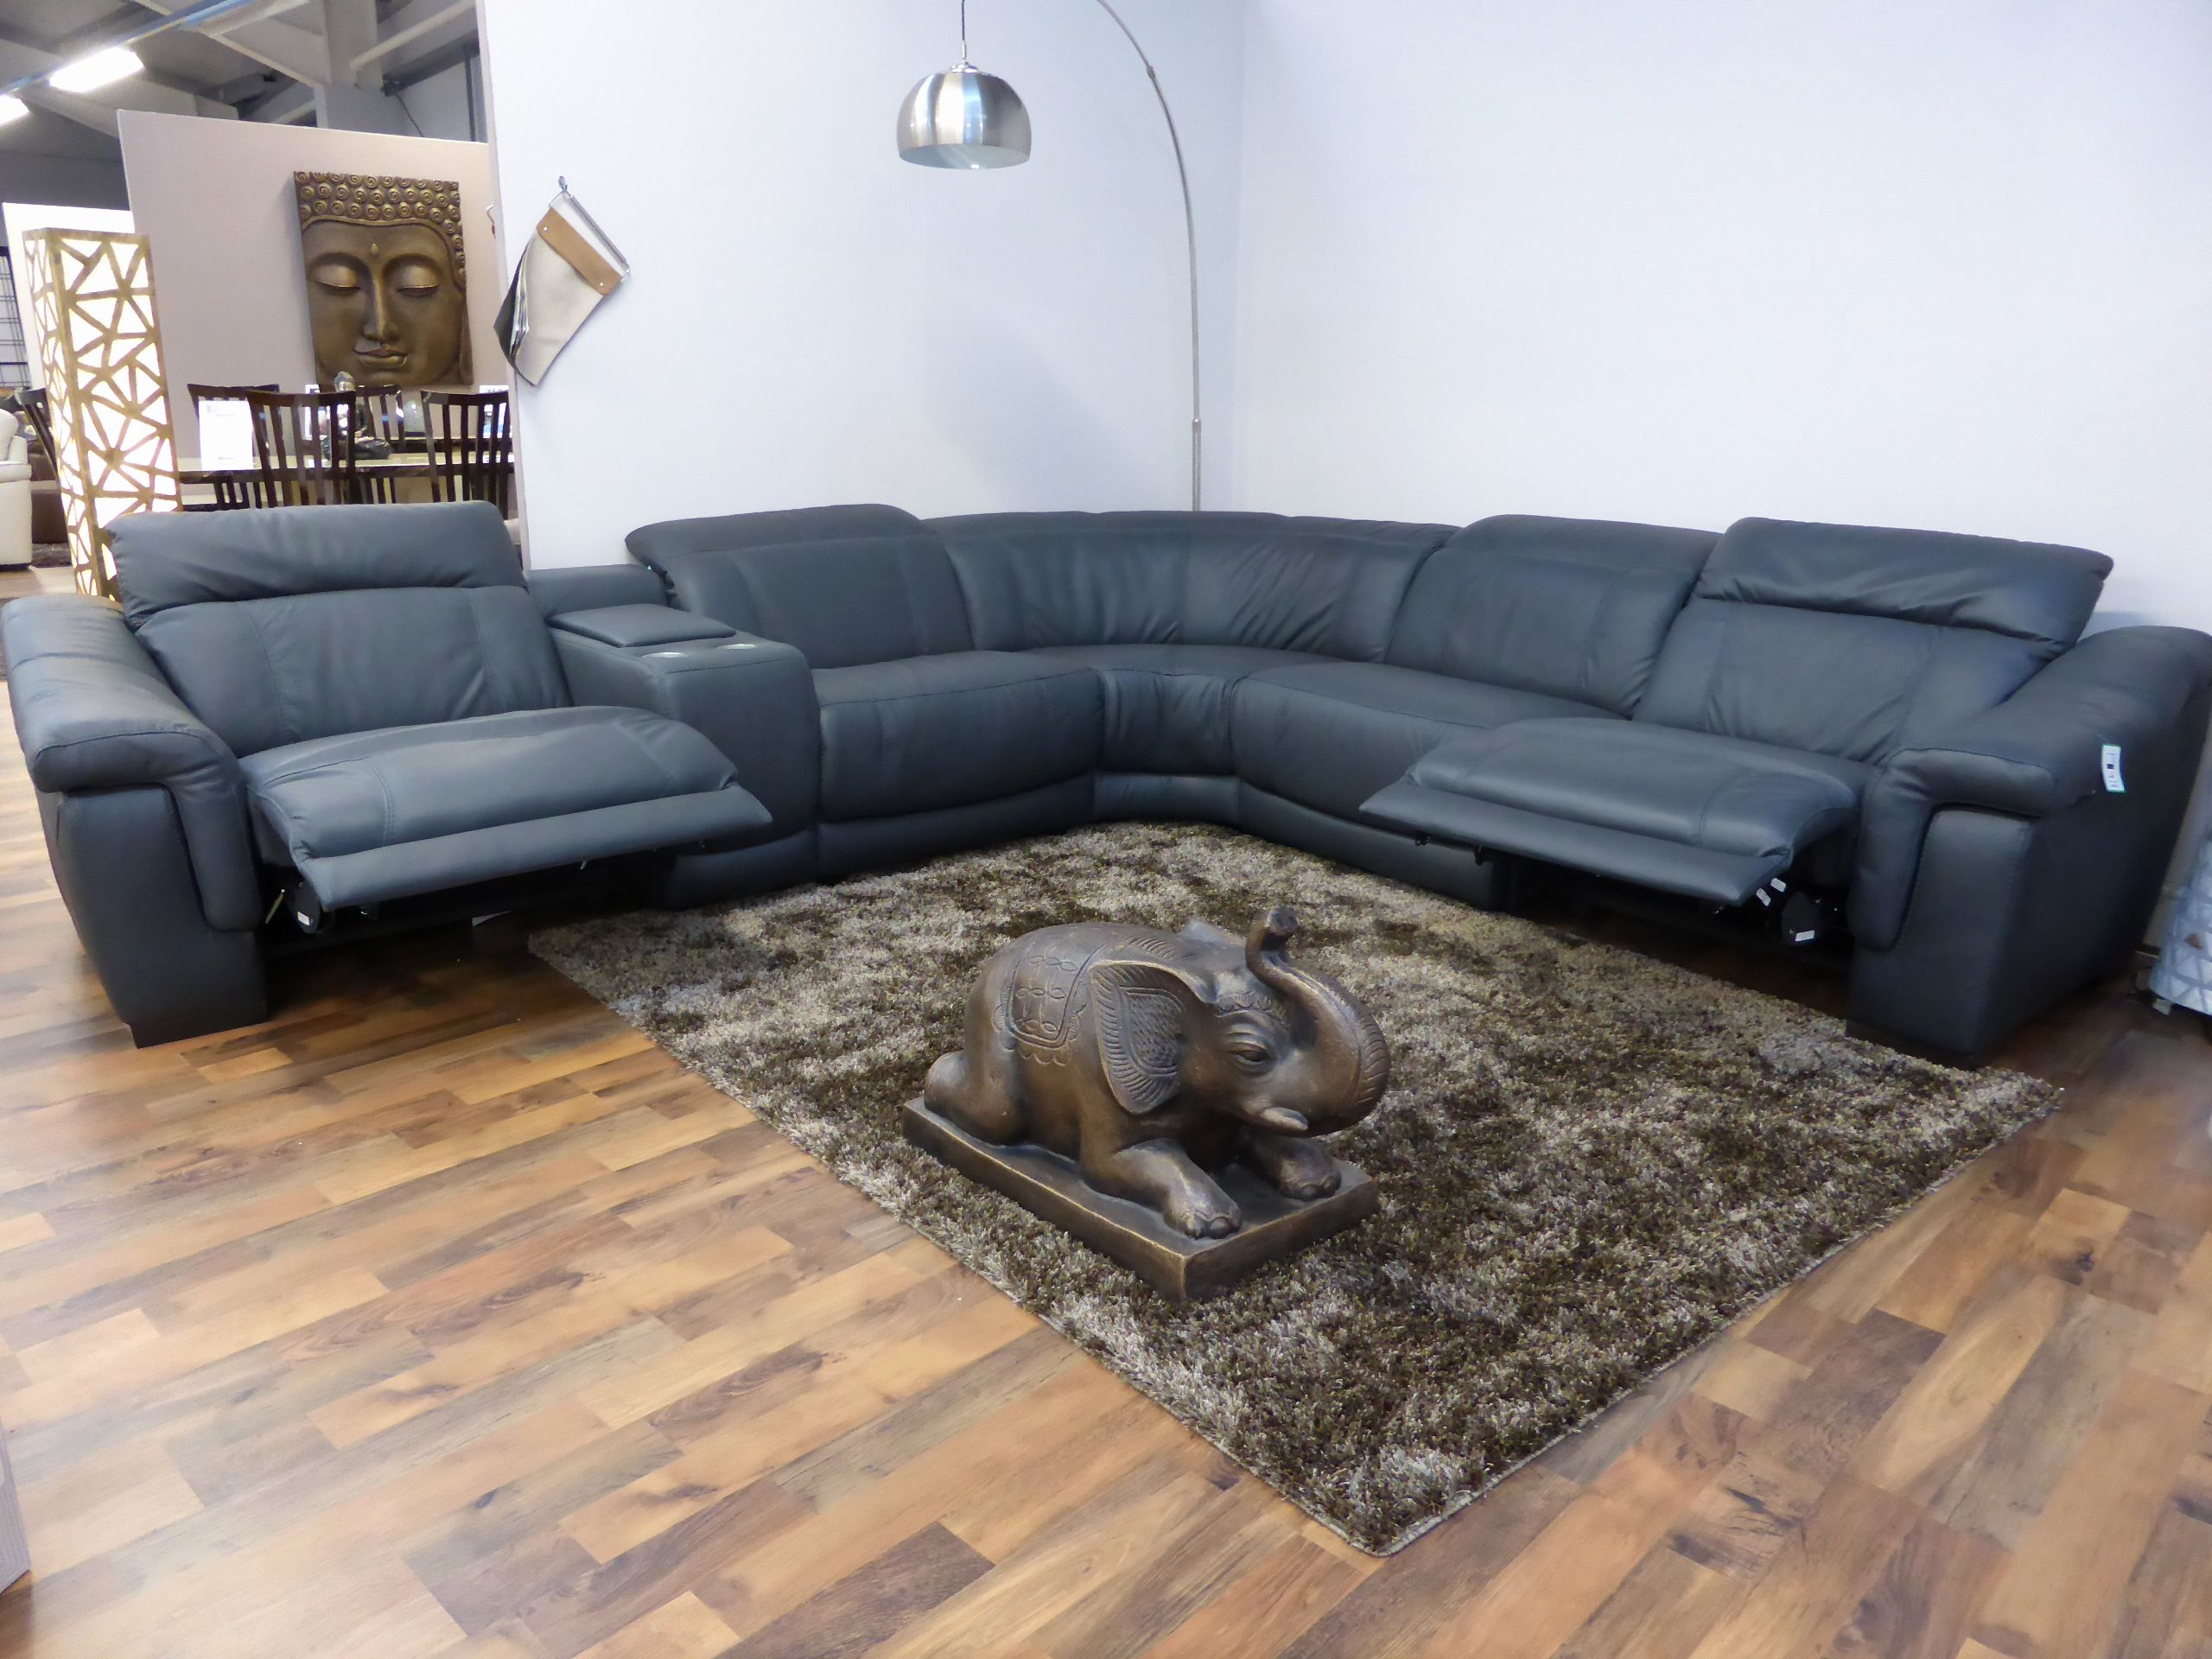 Pin By Great Sofas On Corner Sofa Leather Corner Sofa Sofa And Loveseat Set Sectional Sofa With Recliner